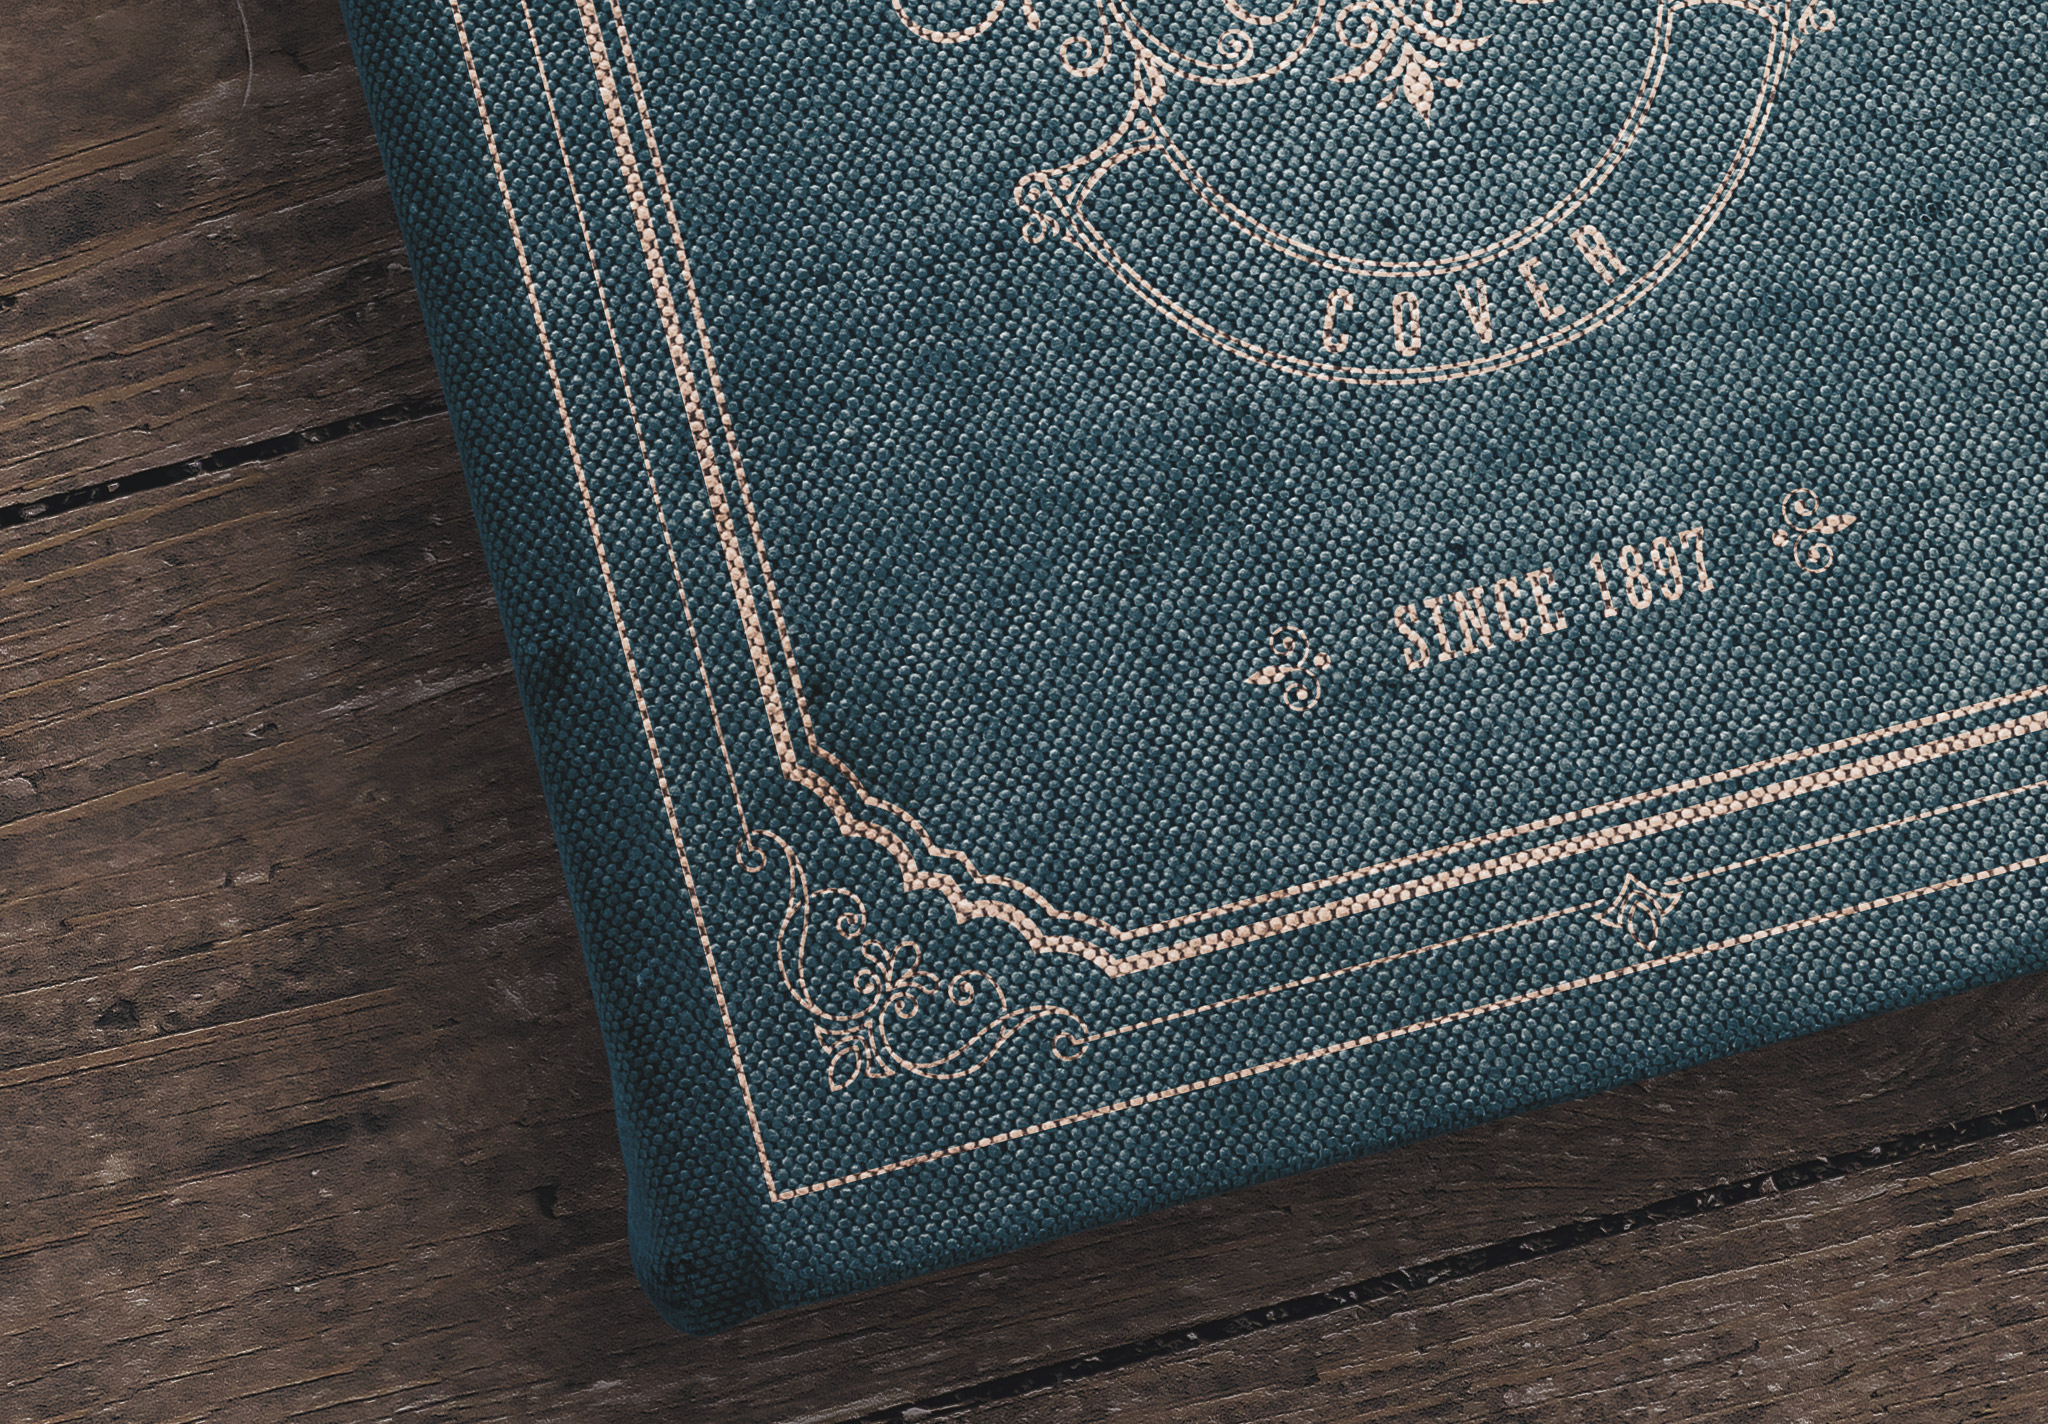 Old Book Cover Mockup image04